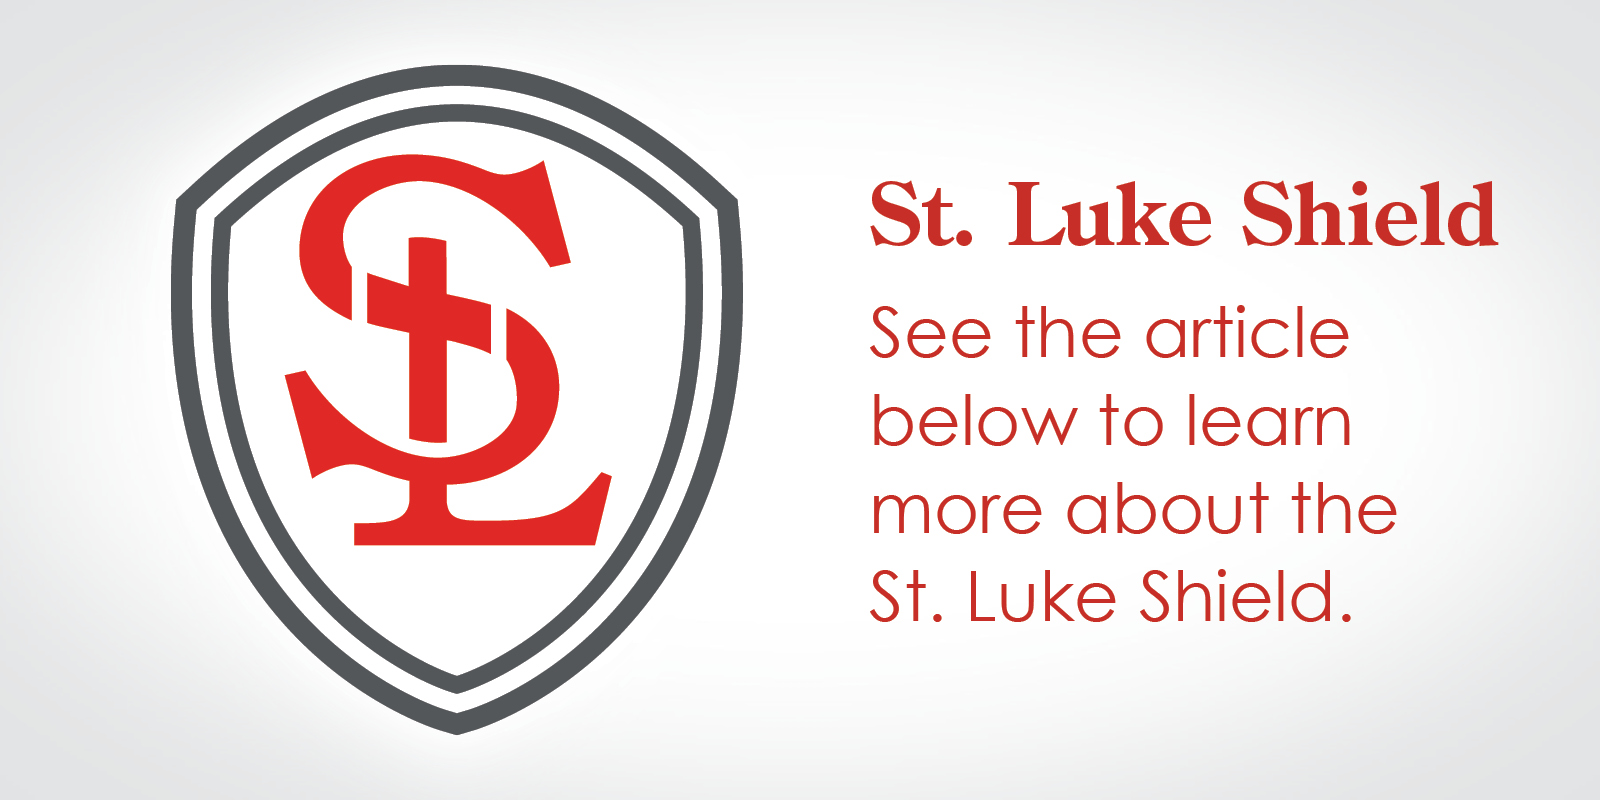 The St. Luke Shield – Our NEW Everyday Logo